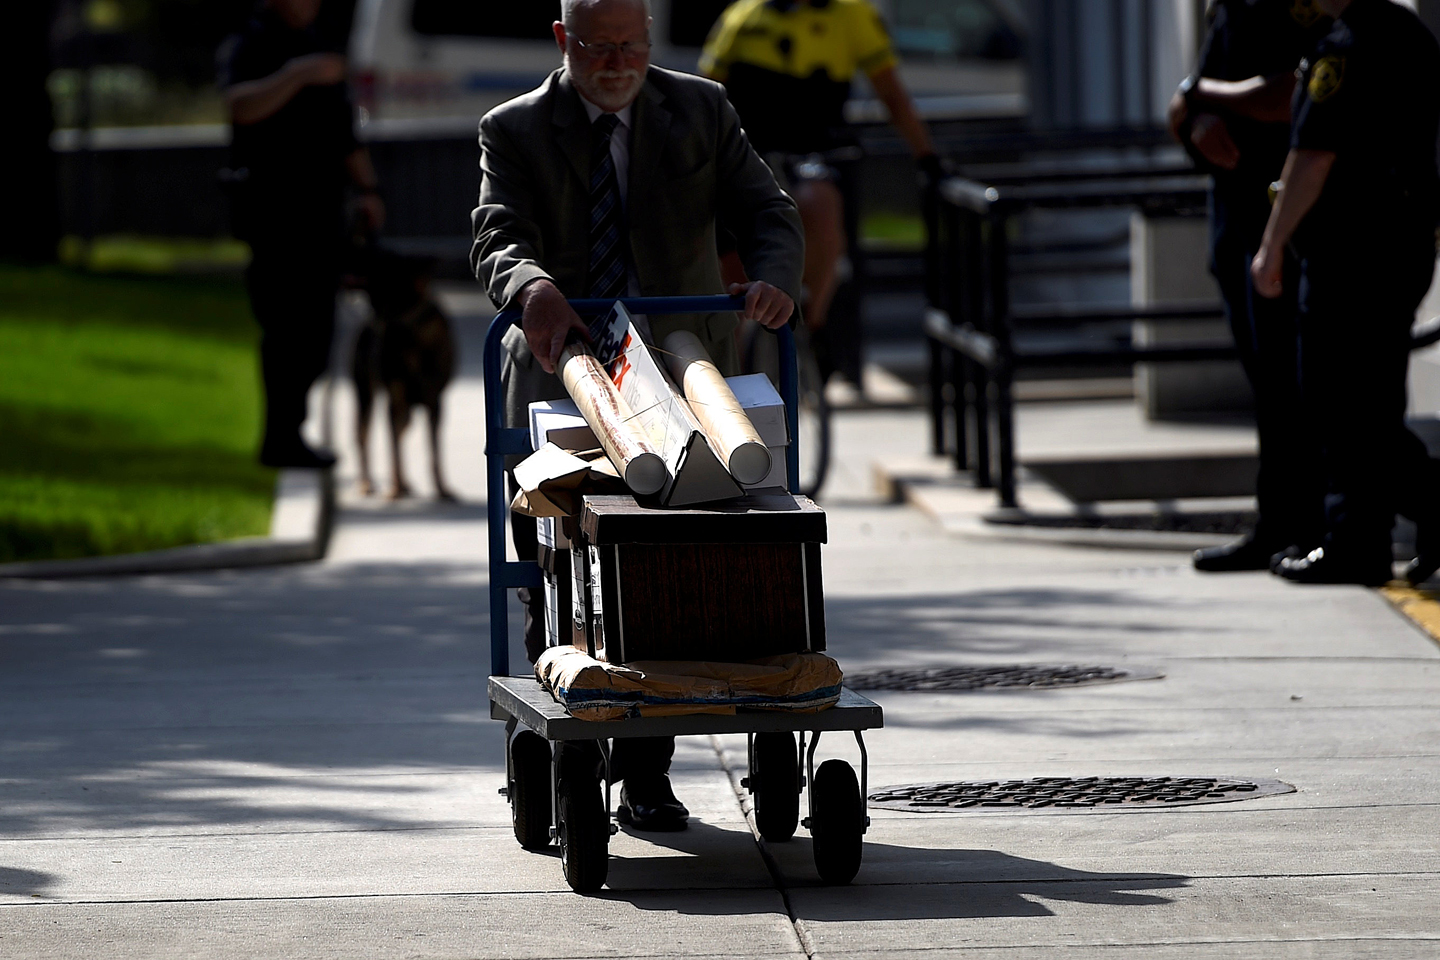 Evidence is wheeled in on a cart before actor and comedian Bill Cosby arrives for a pre-trial hearing on sexual assault charges in Norristown, Pennsylvania May 24, 2016.